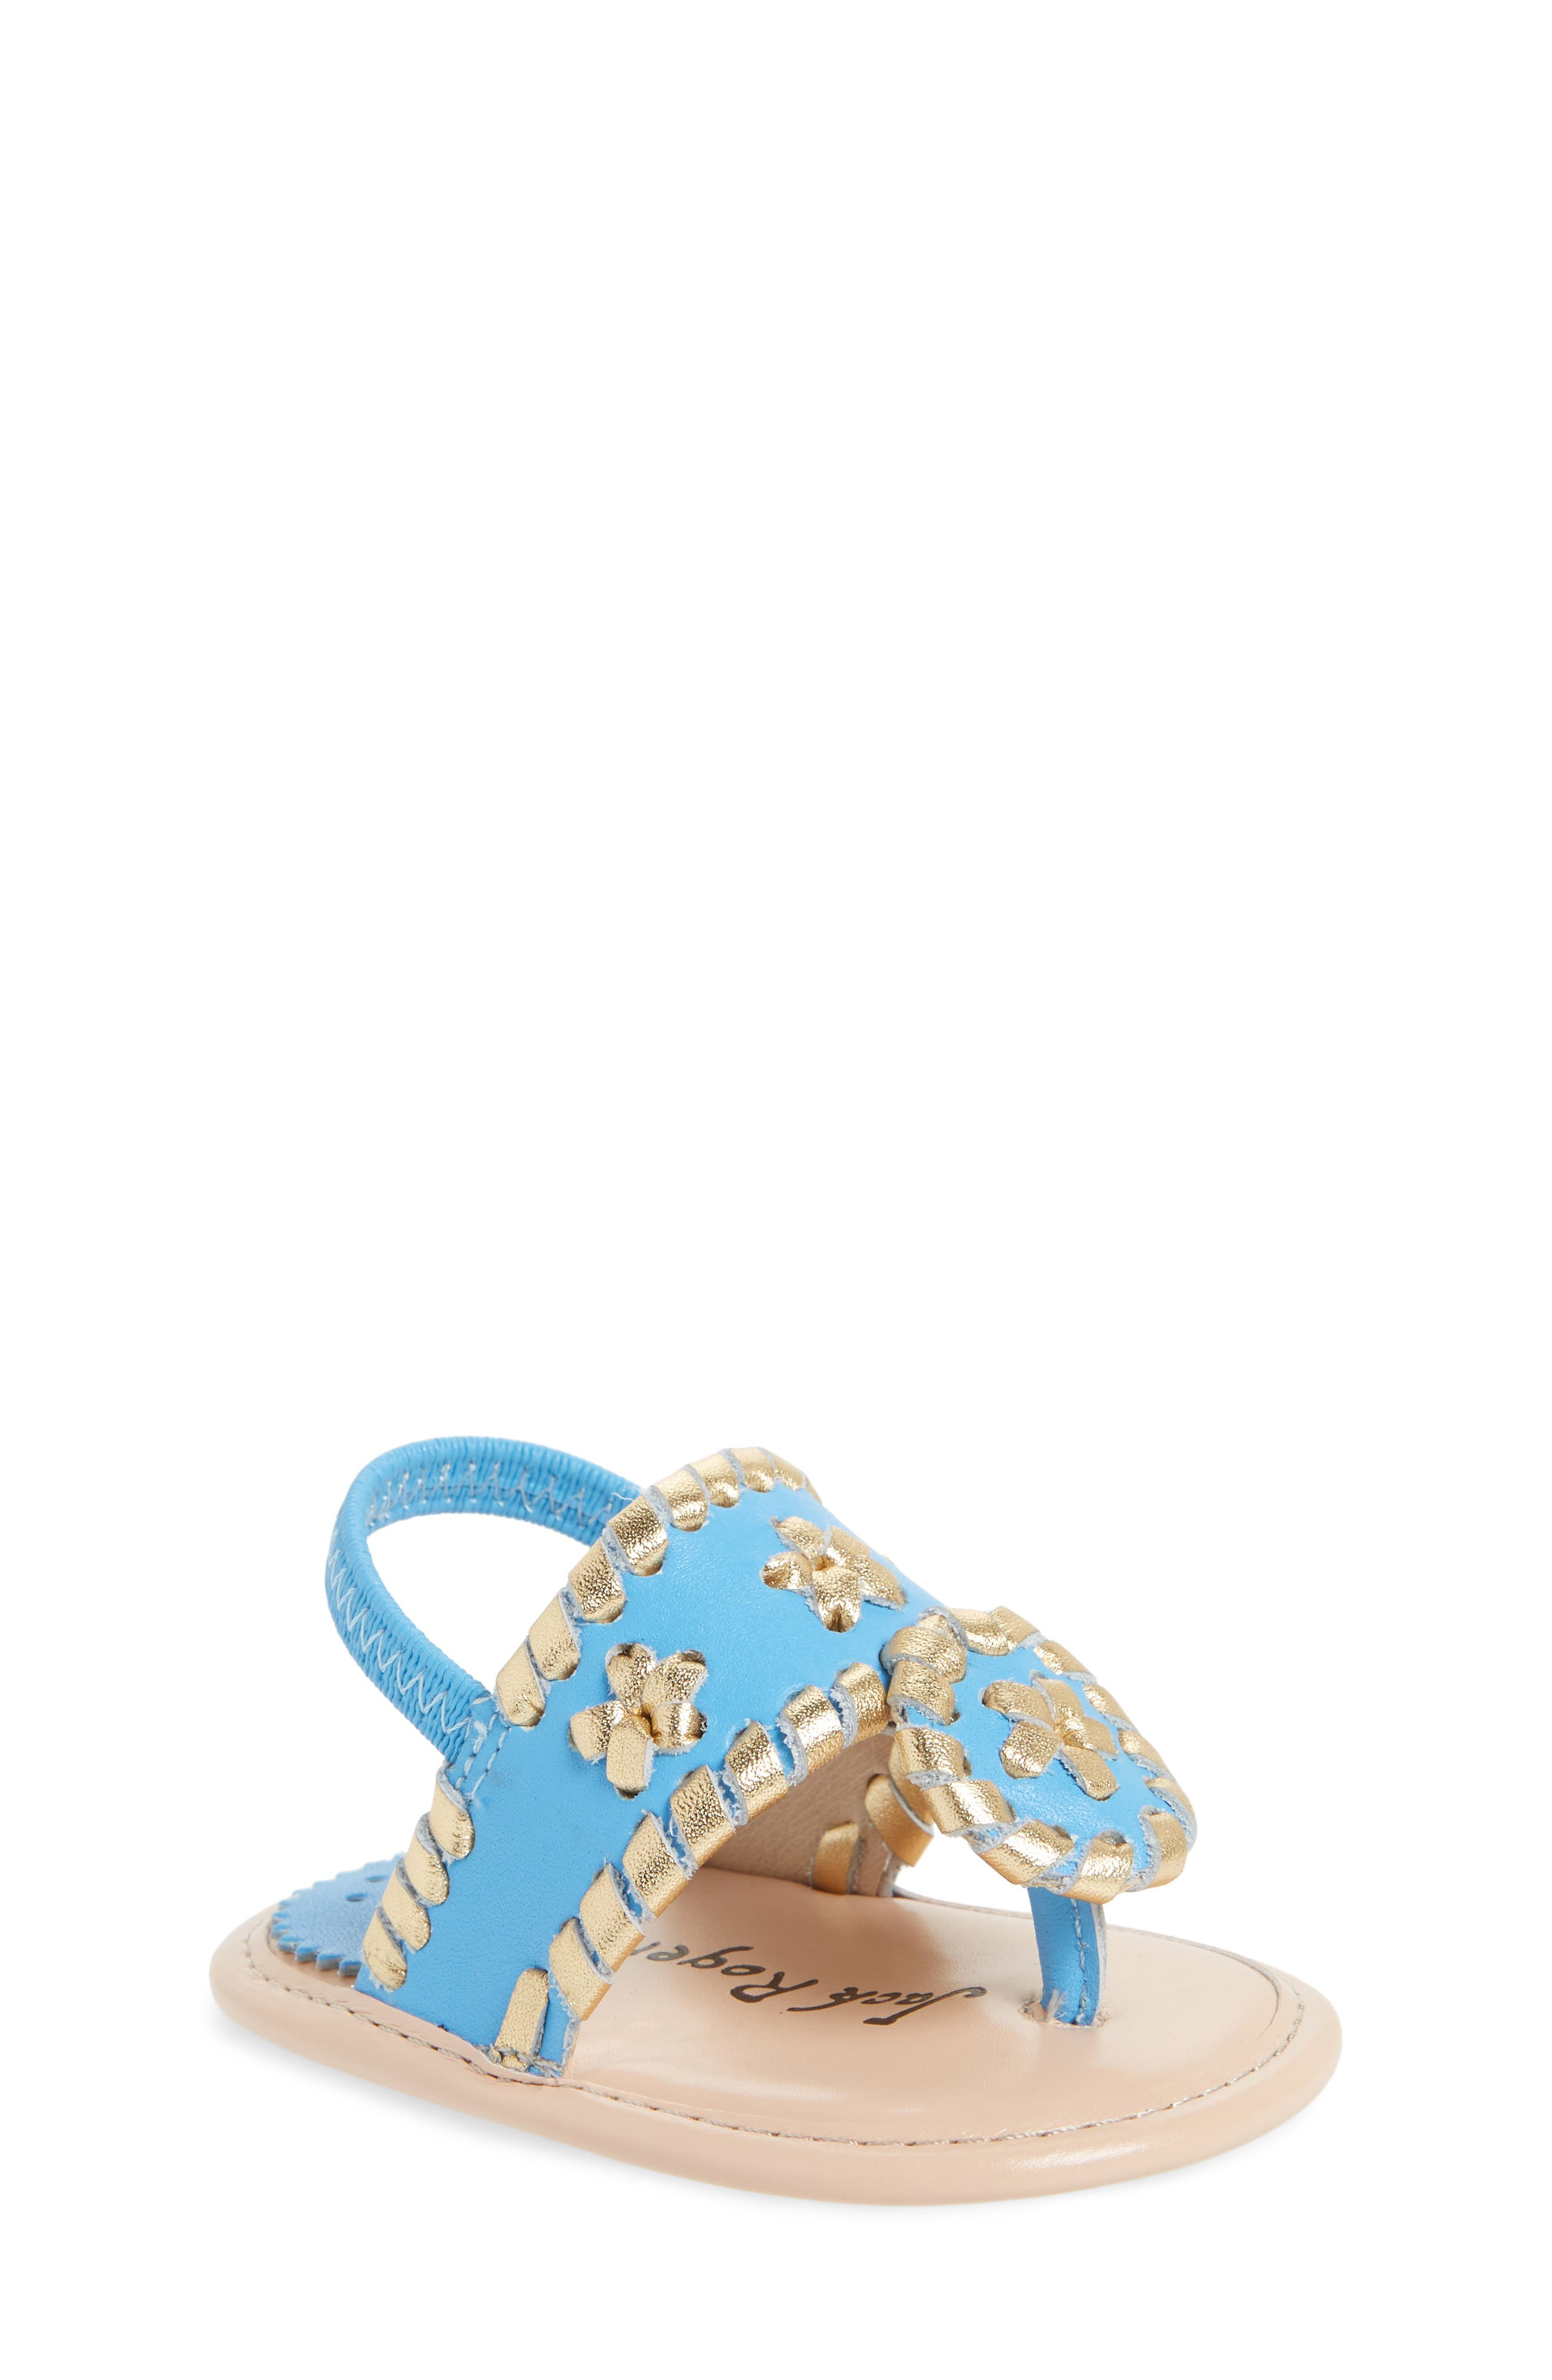 Hollis Sandal,                             Main thumbnail 1, color,                             FRENCH BLUE/ GOLD LEATHER